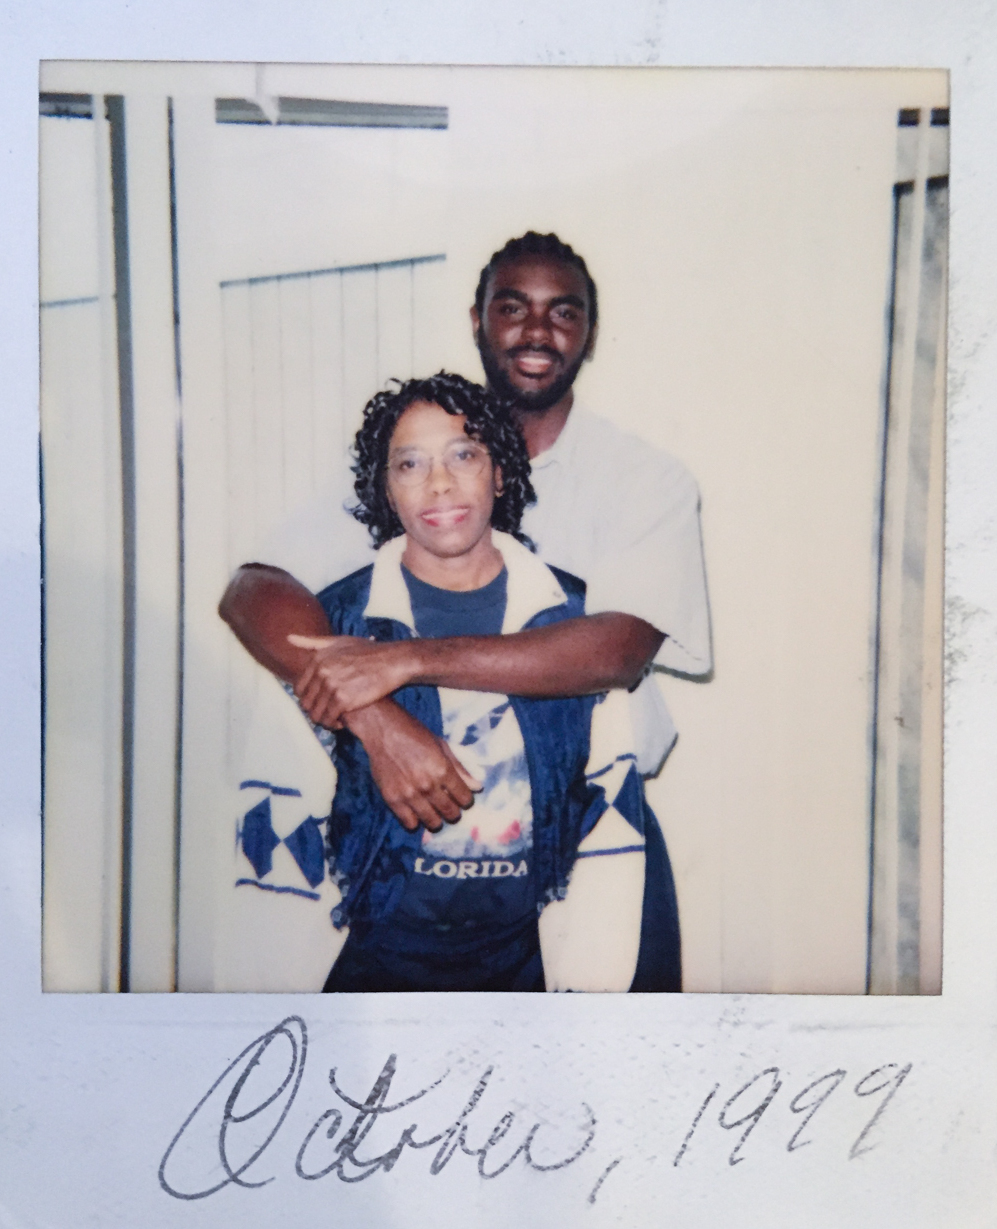 When Marcus Bullock went to prison in 1997, he was only 15. His mother, Sylvia, wrote to him frequently for the eight years he was there and visited him. (Courtesy of Sylvia Bullock)